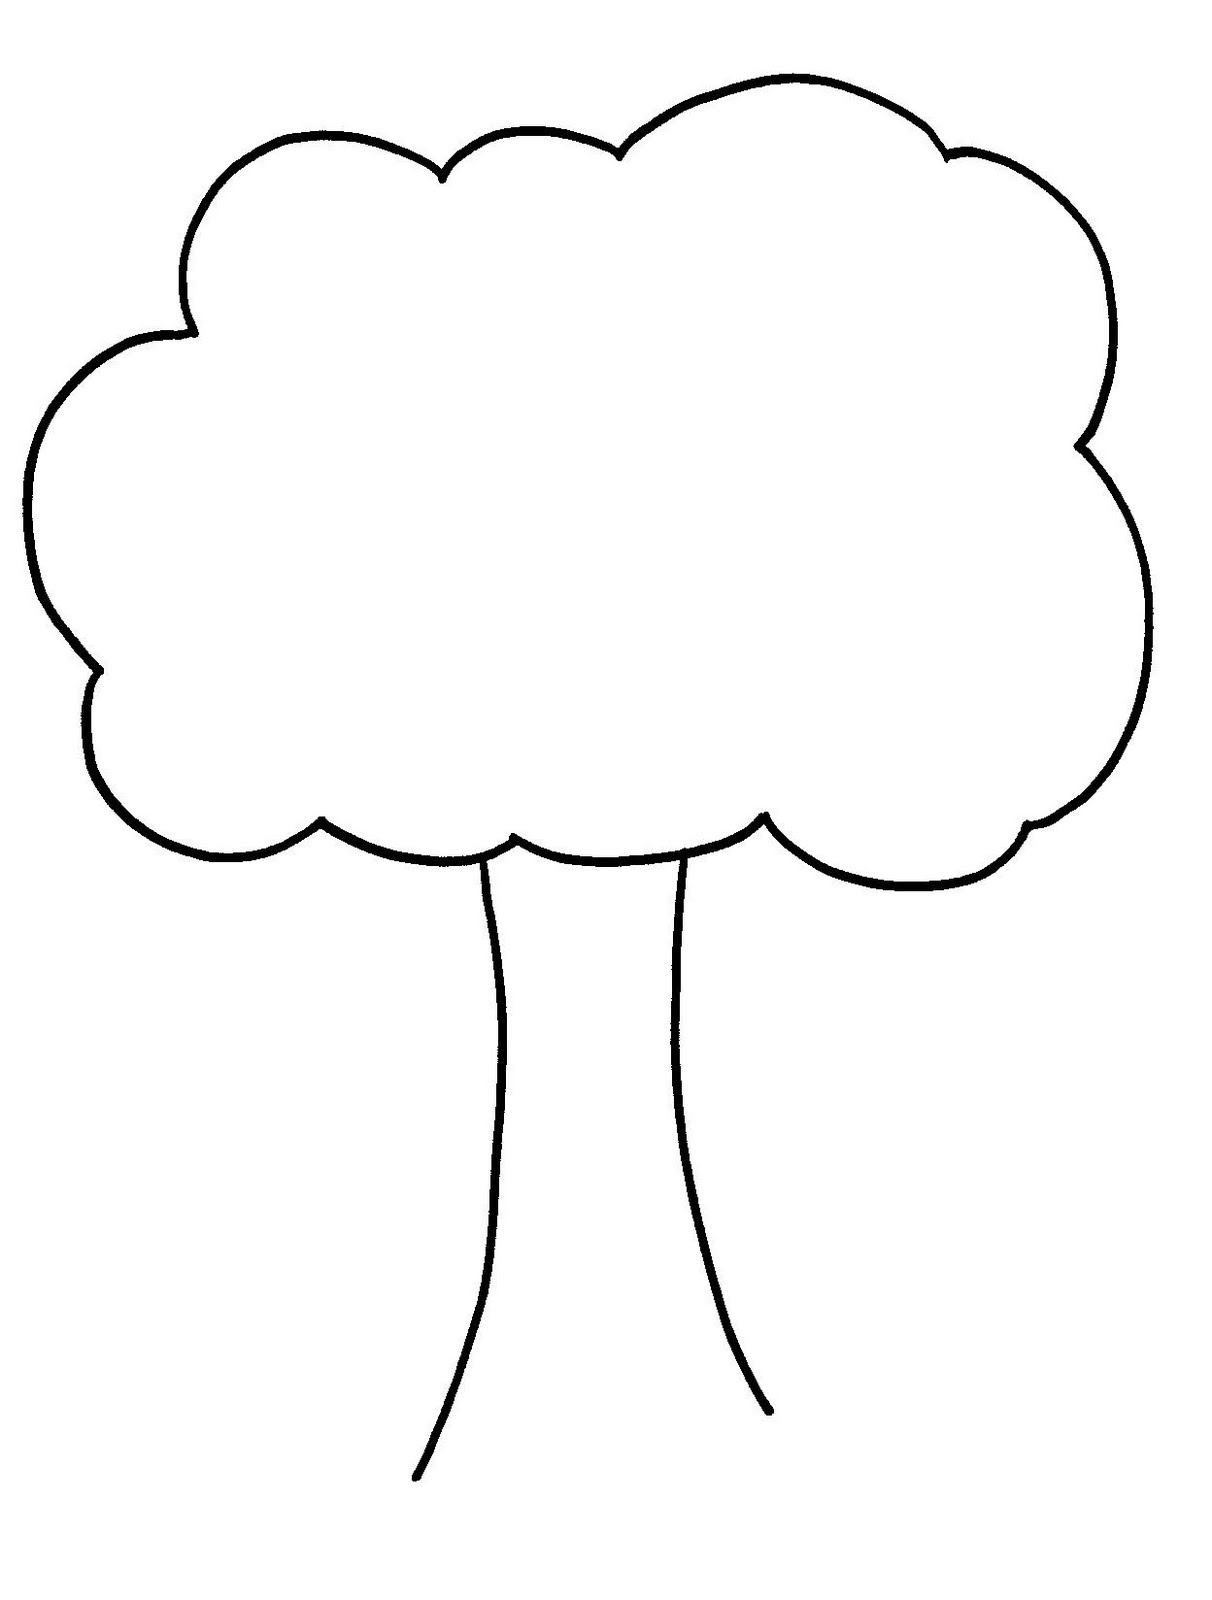 Free Stencil Of A Tree Outline, Download Free Clip Art, Free ... image freeuse download